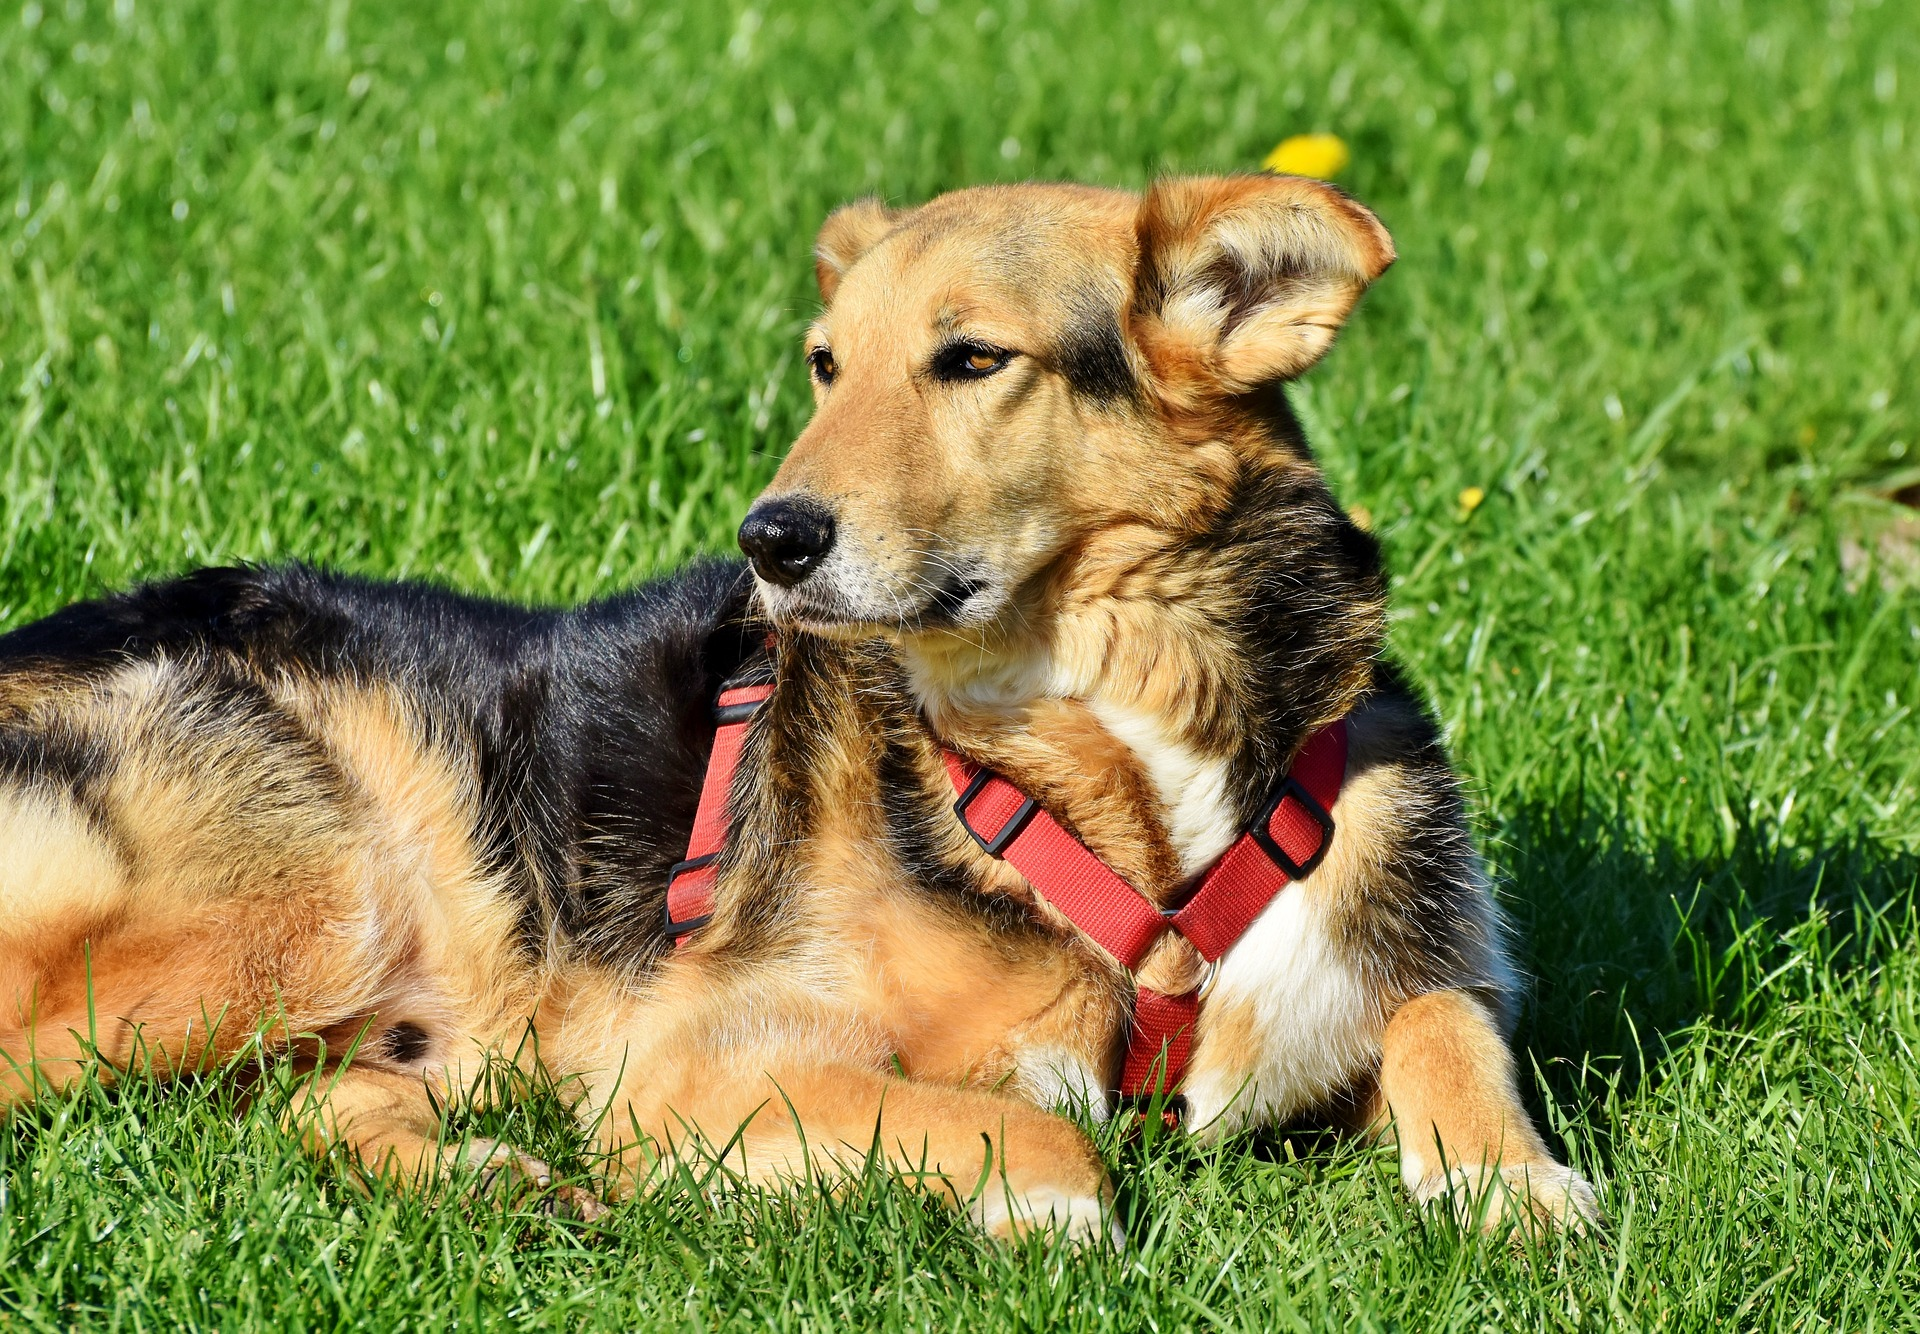 causes of laryngeall paralysis in dogs